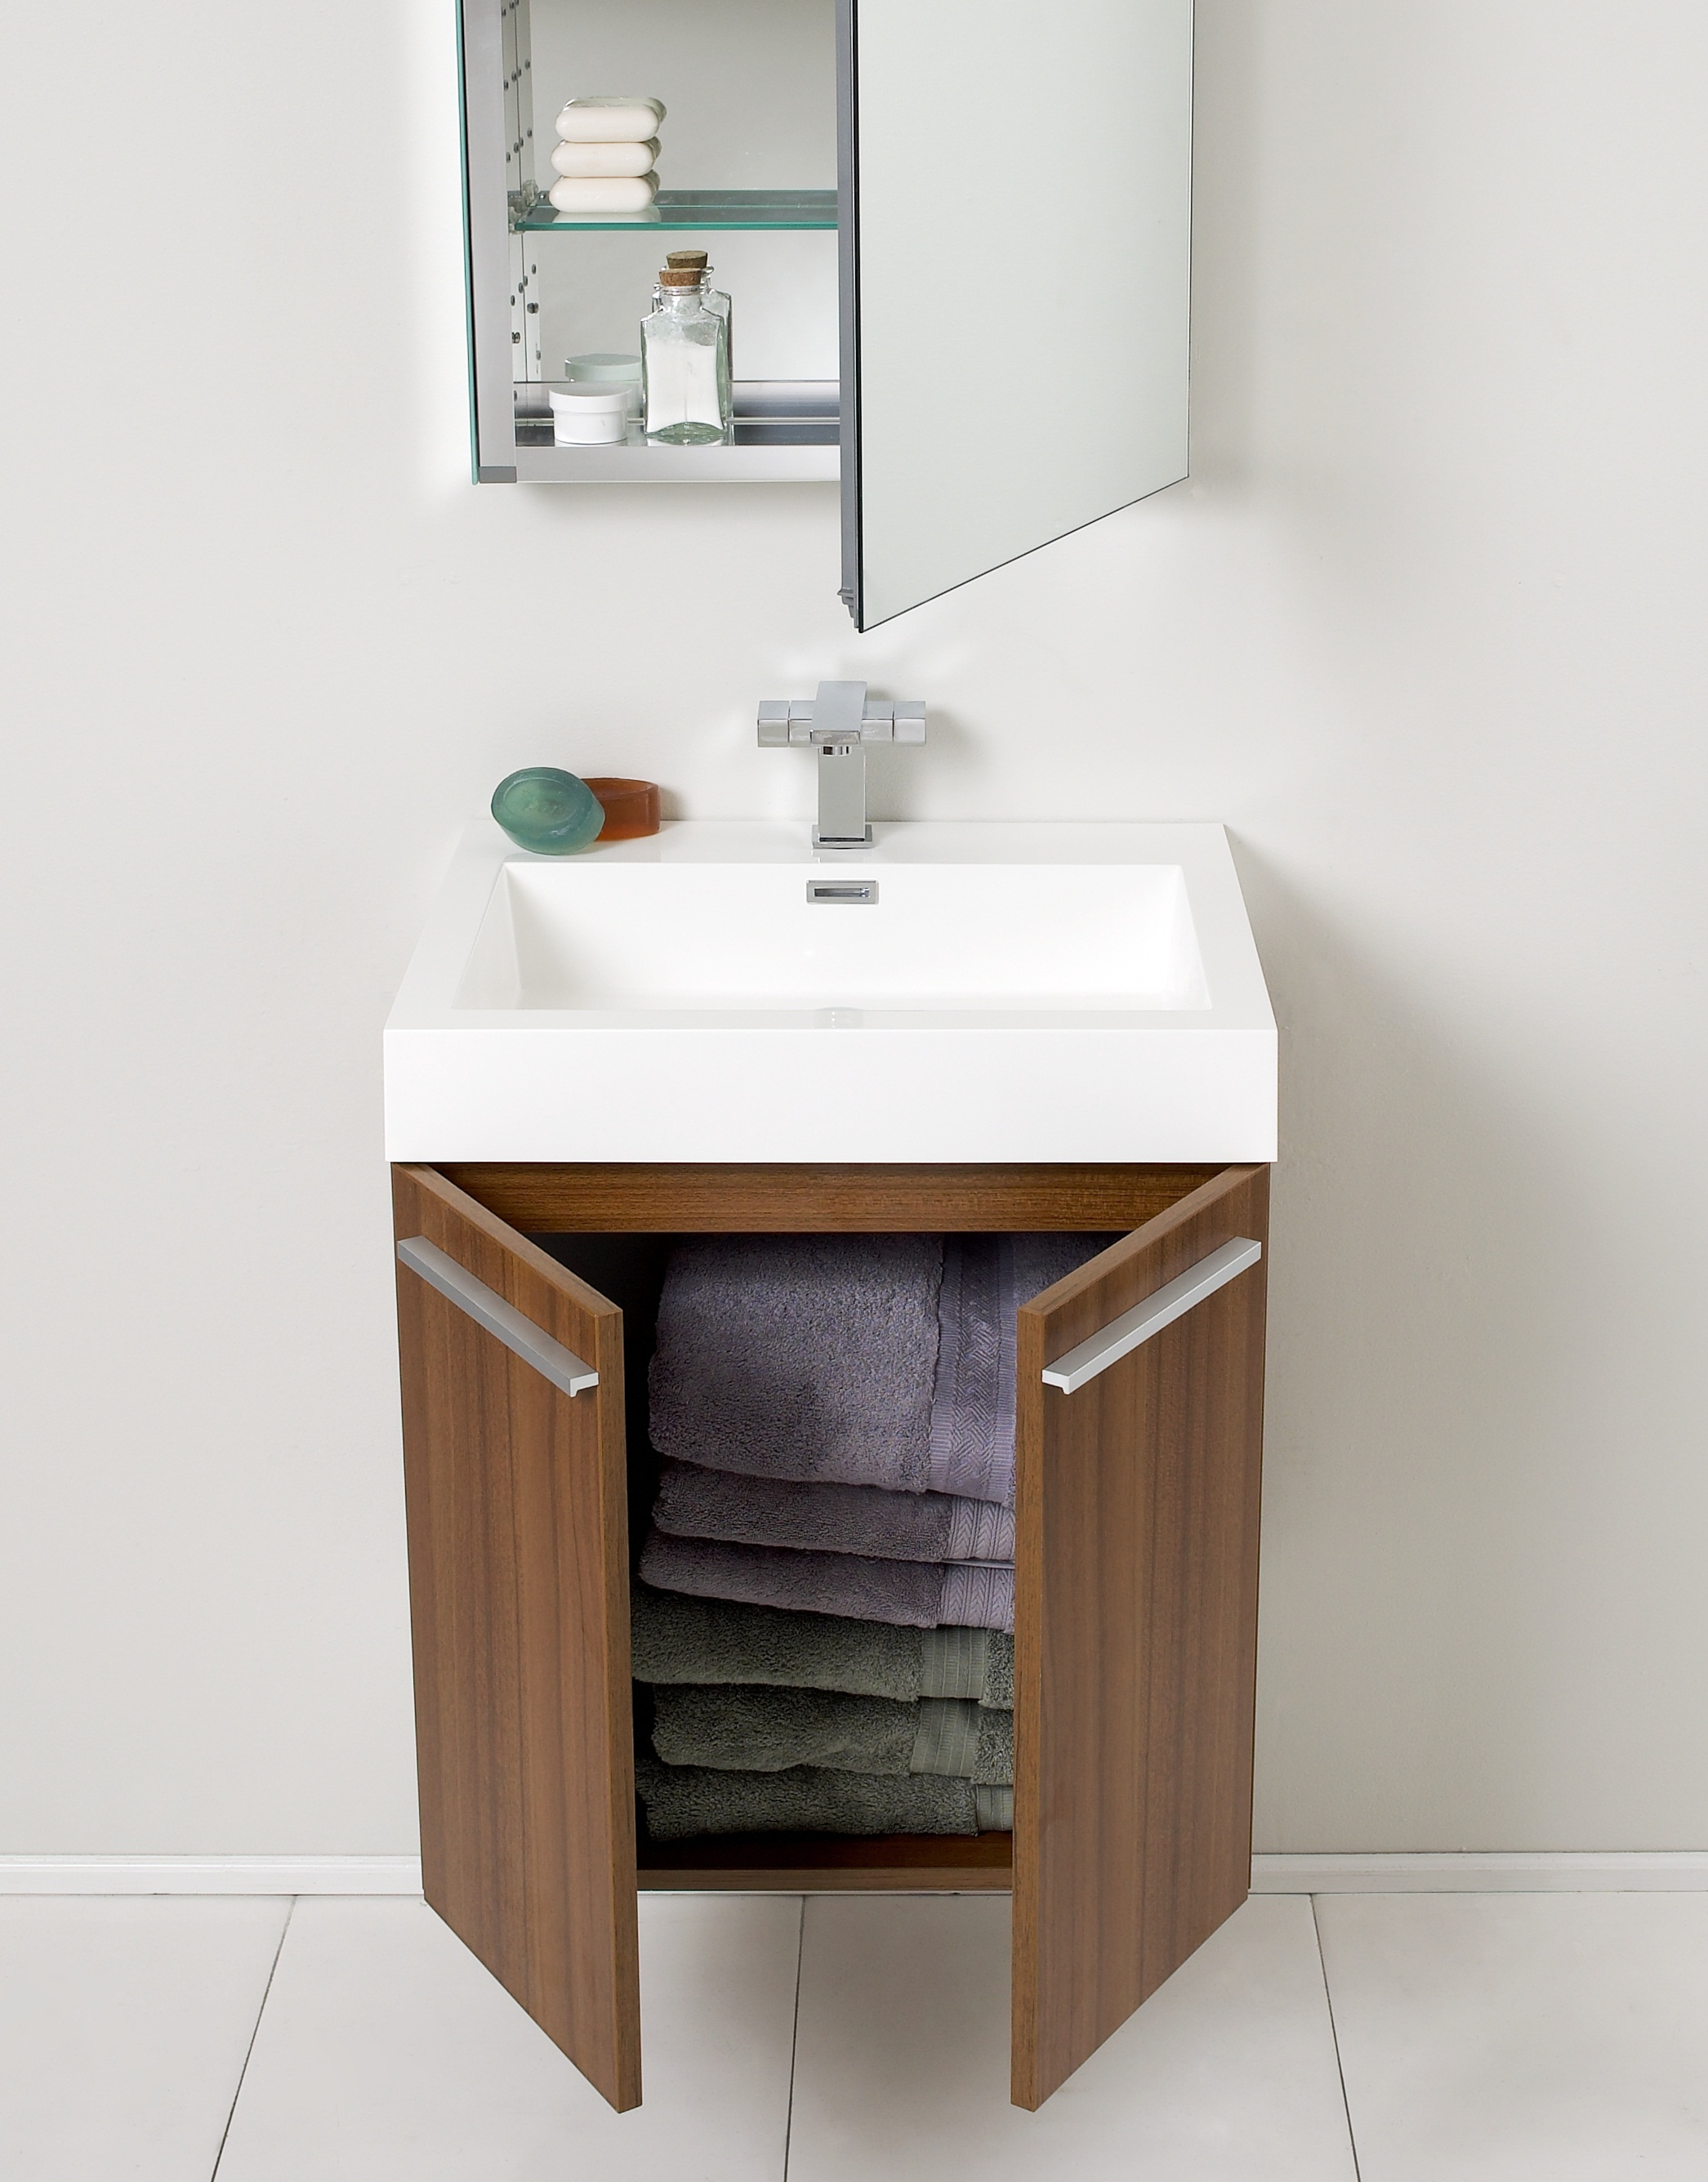 Small bathroom vanities for layouts lacking space eva for Small bathroom vanity with storage